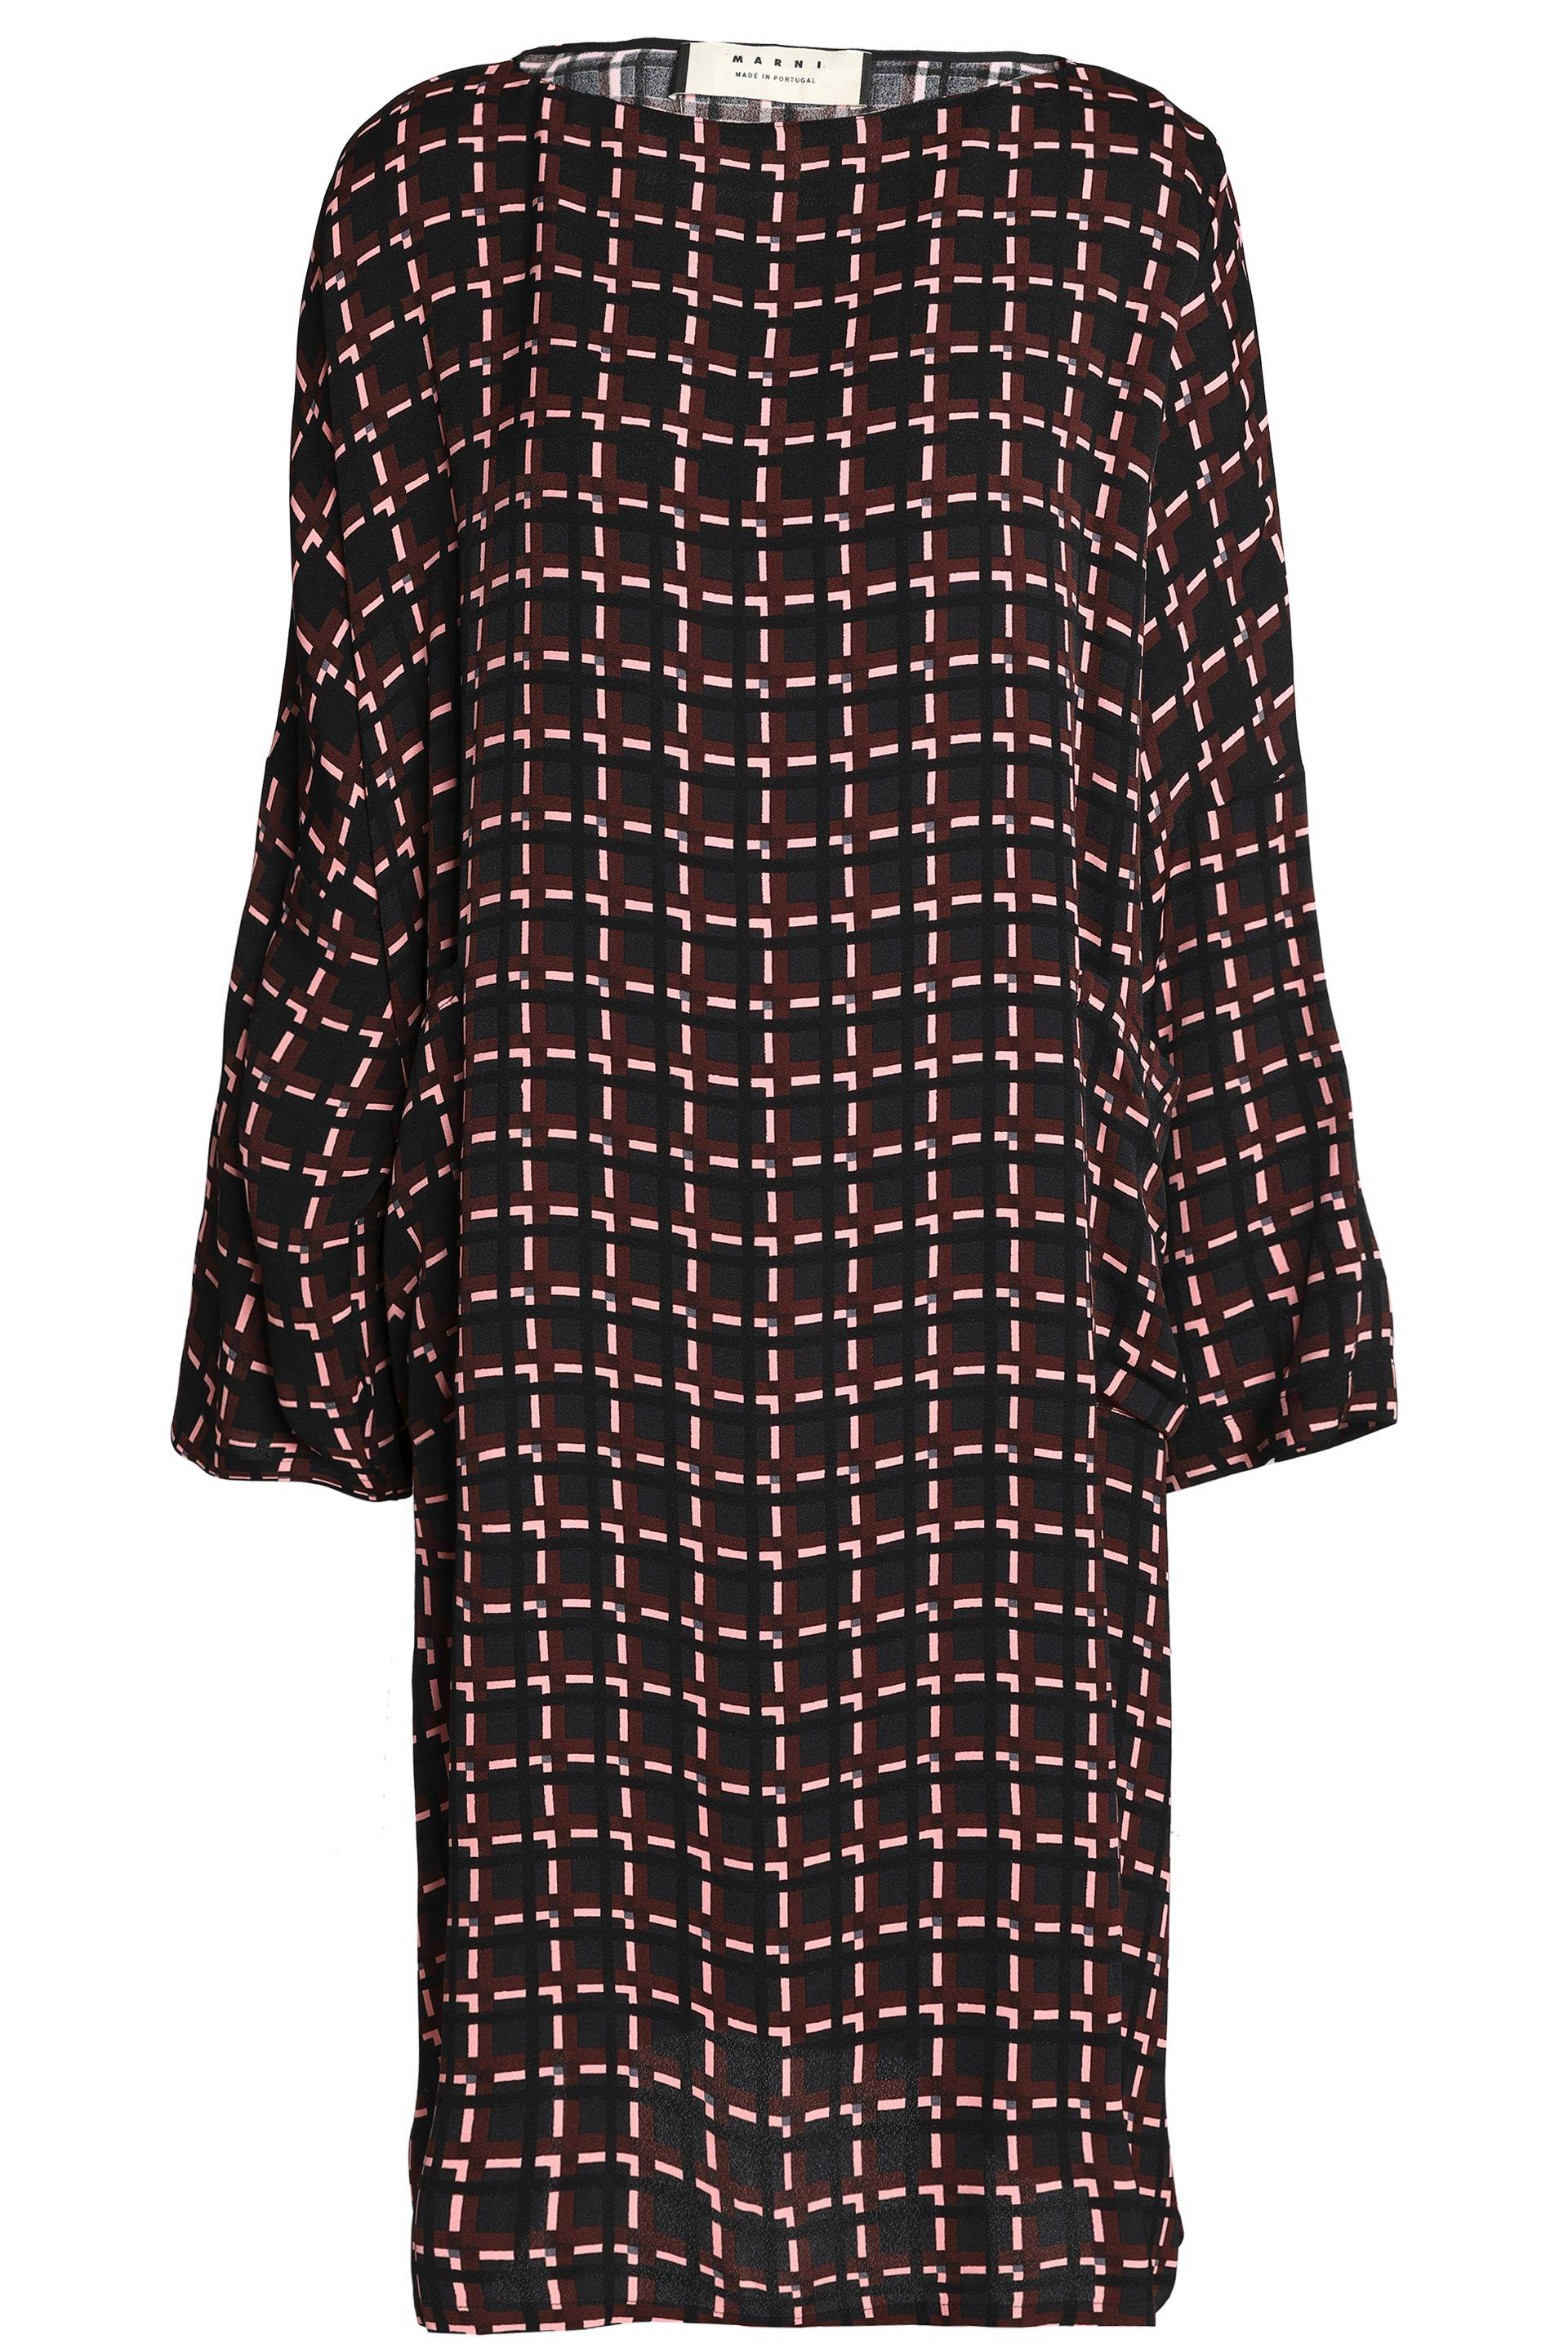 low priced e0349 1ba24 marni-Black-Oversized-Checked-Crepe-Dress.jpeg